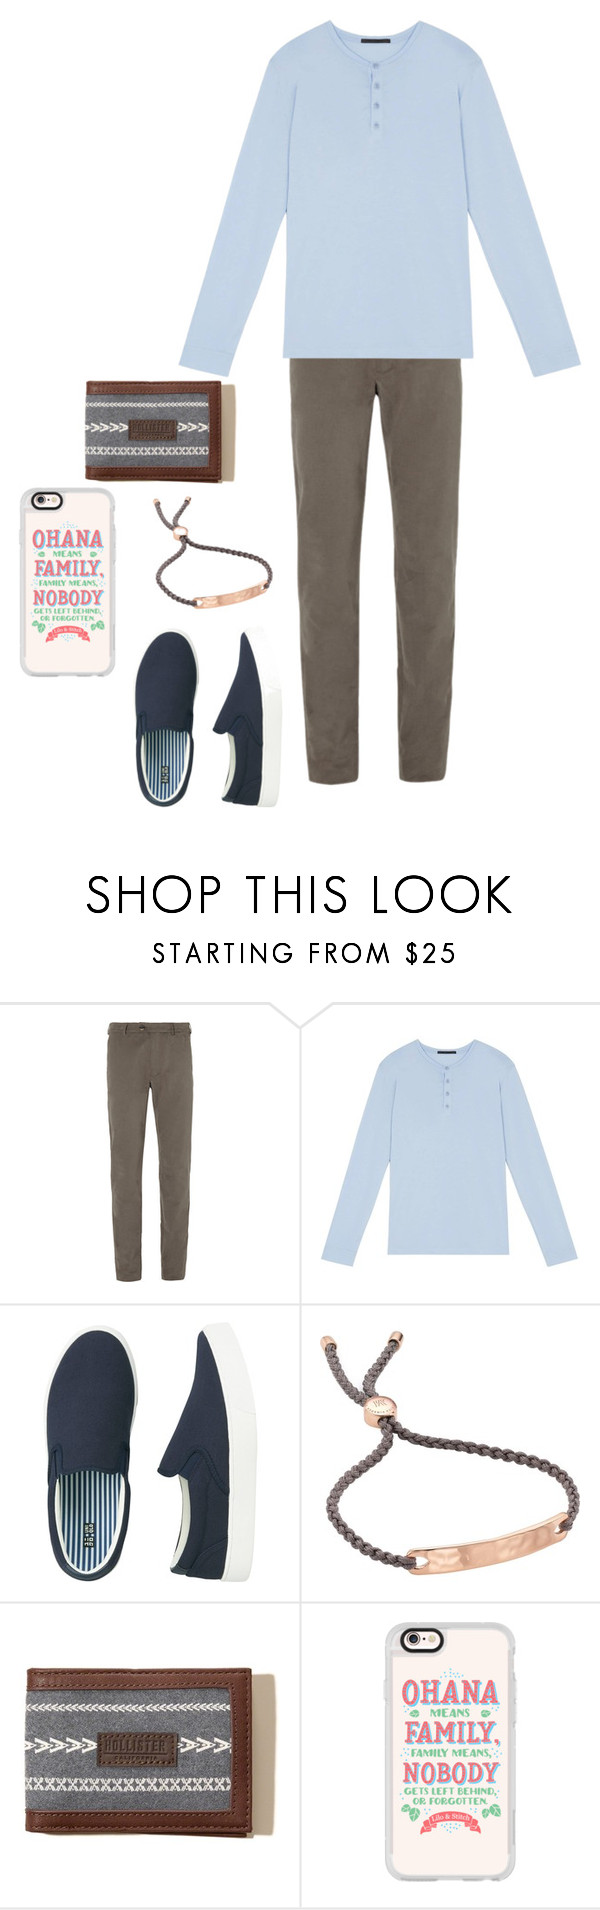 """Little"" by racheljohnson1226 ❤ liked on Polyvore featuring Private White V.C., The Founder, Uniqlo, Monica Vinader, Hollister Co., Casetify, men's fashion and menswear"